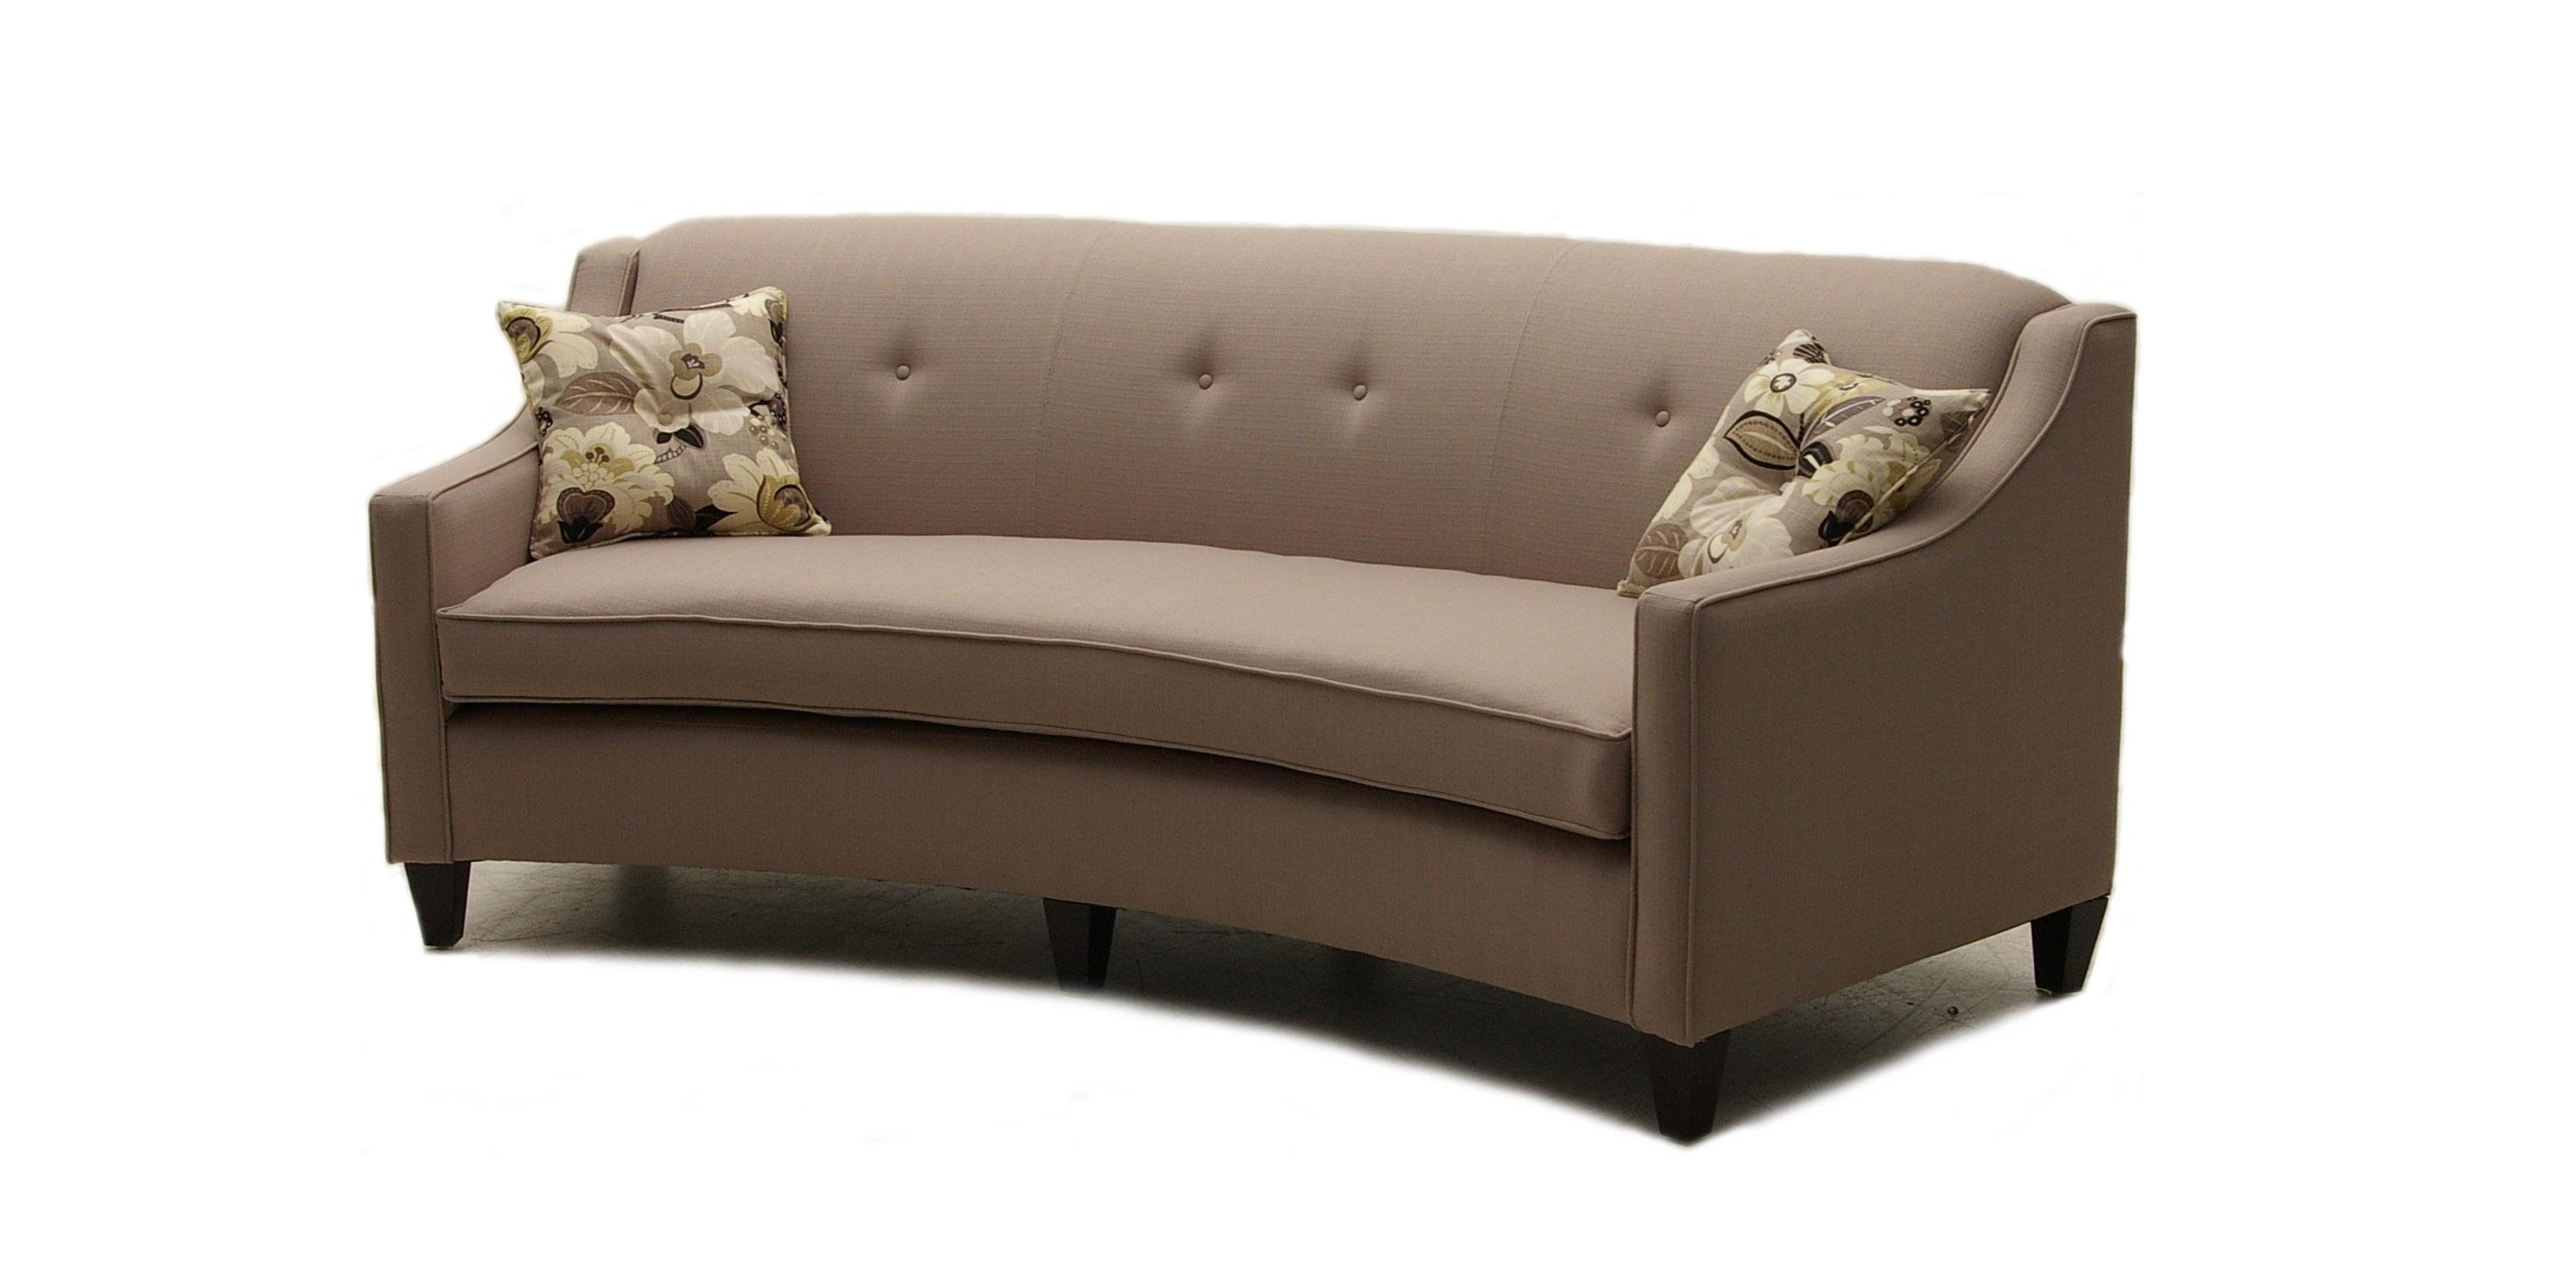 sofa images 2017 names brand 2018 latest small curved sectional sofas ideas